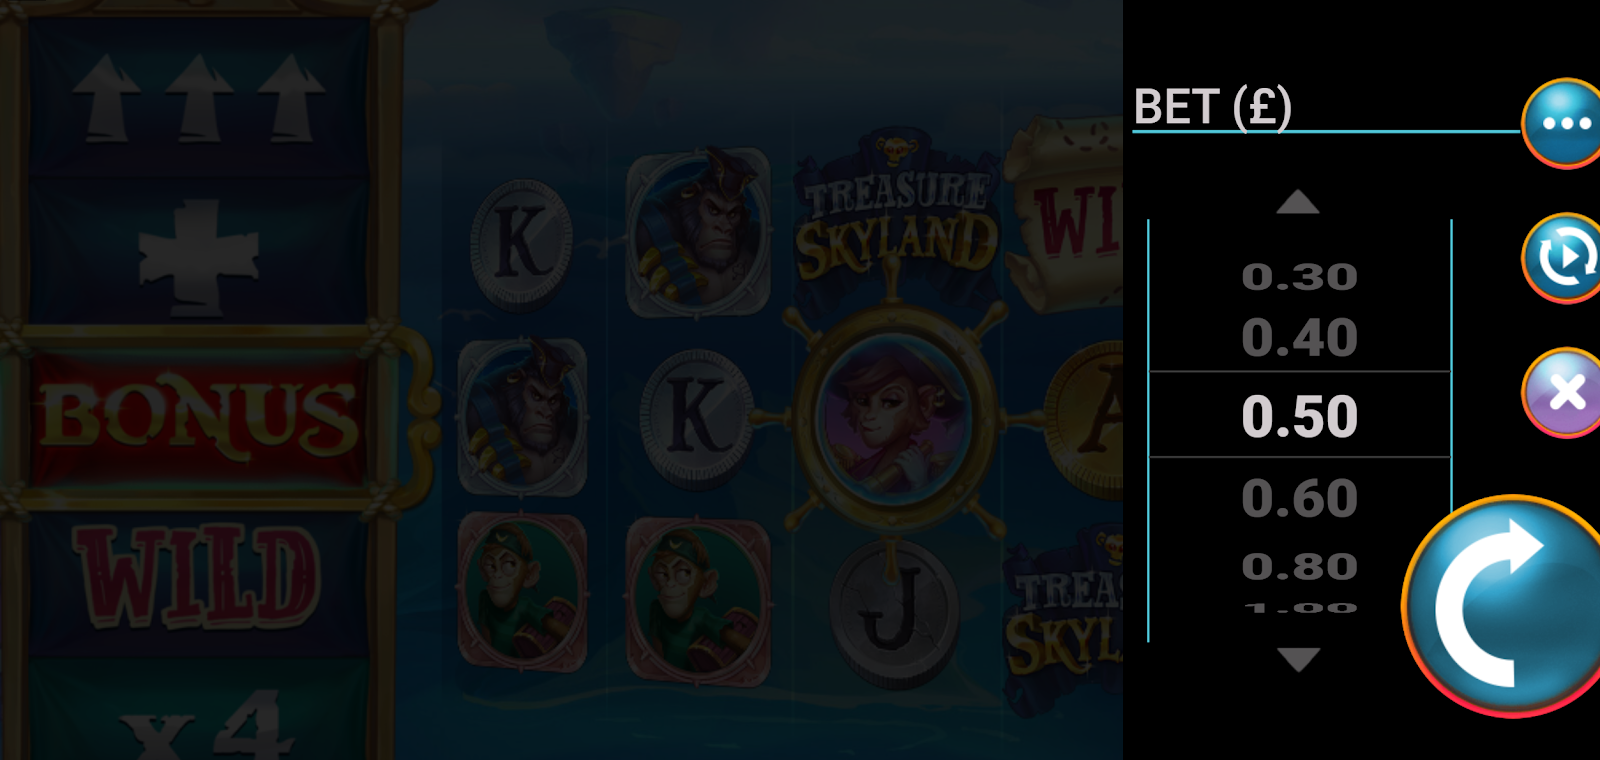 Treasure Skyland is a slots game that lets you place a range of bet sizes